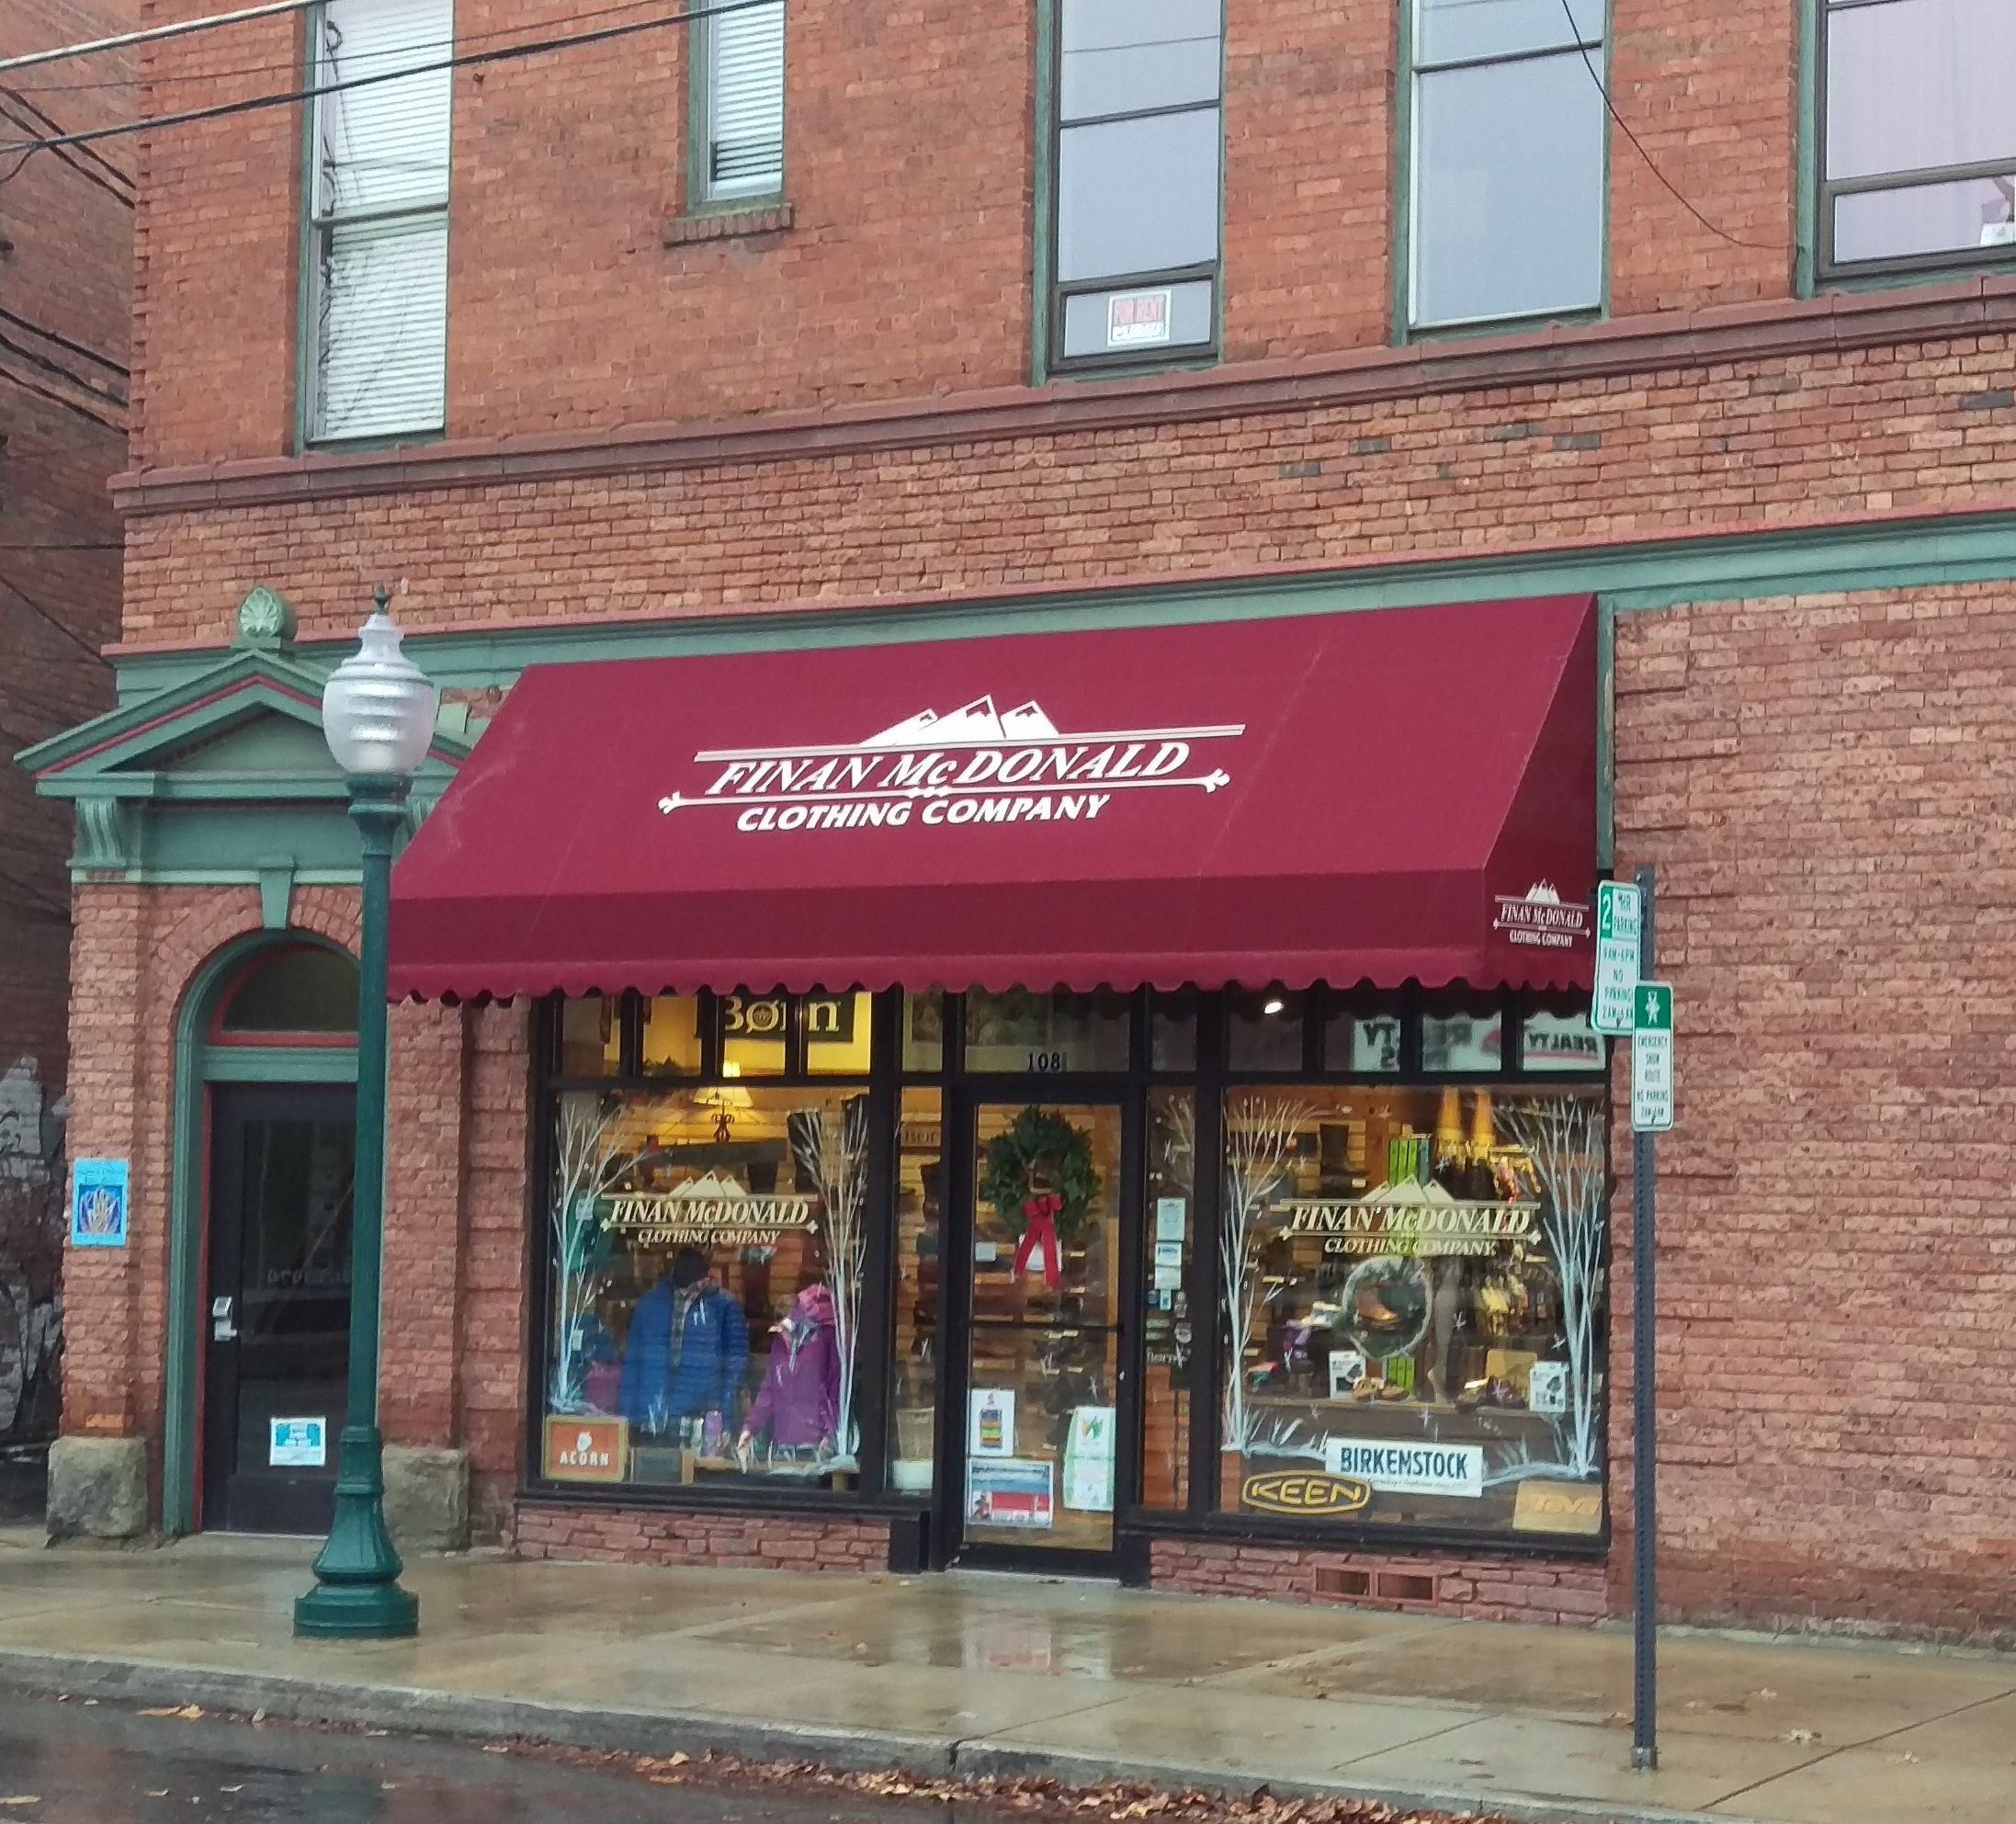 We Just Built And Installed A New Fabric Awning For Finan Mcdonald Clothing Company In Sandpoint Id Fabric Awning Installation Awning